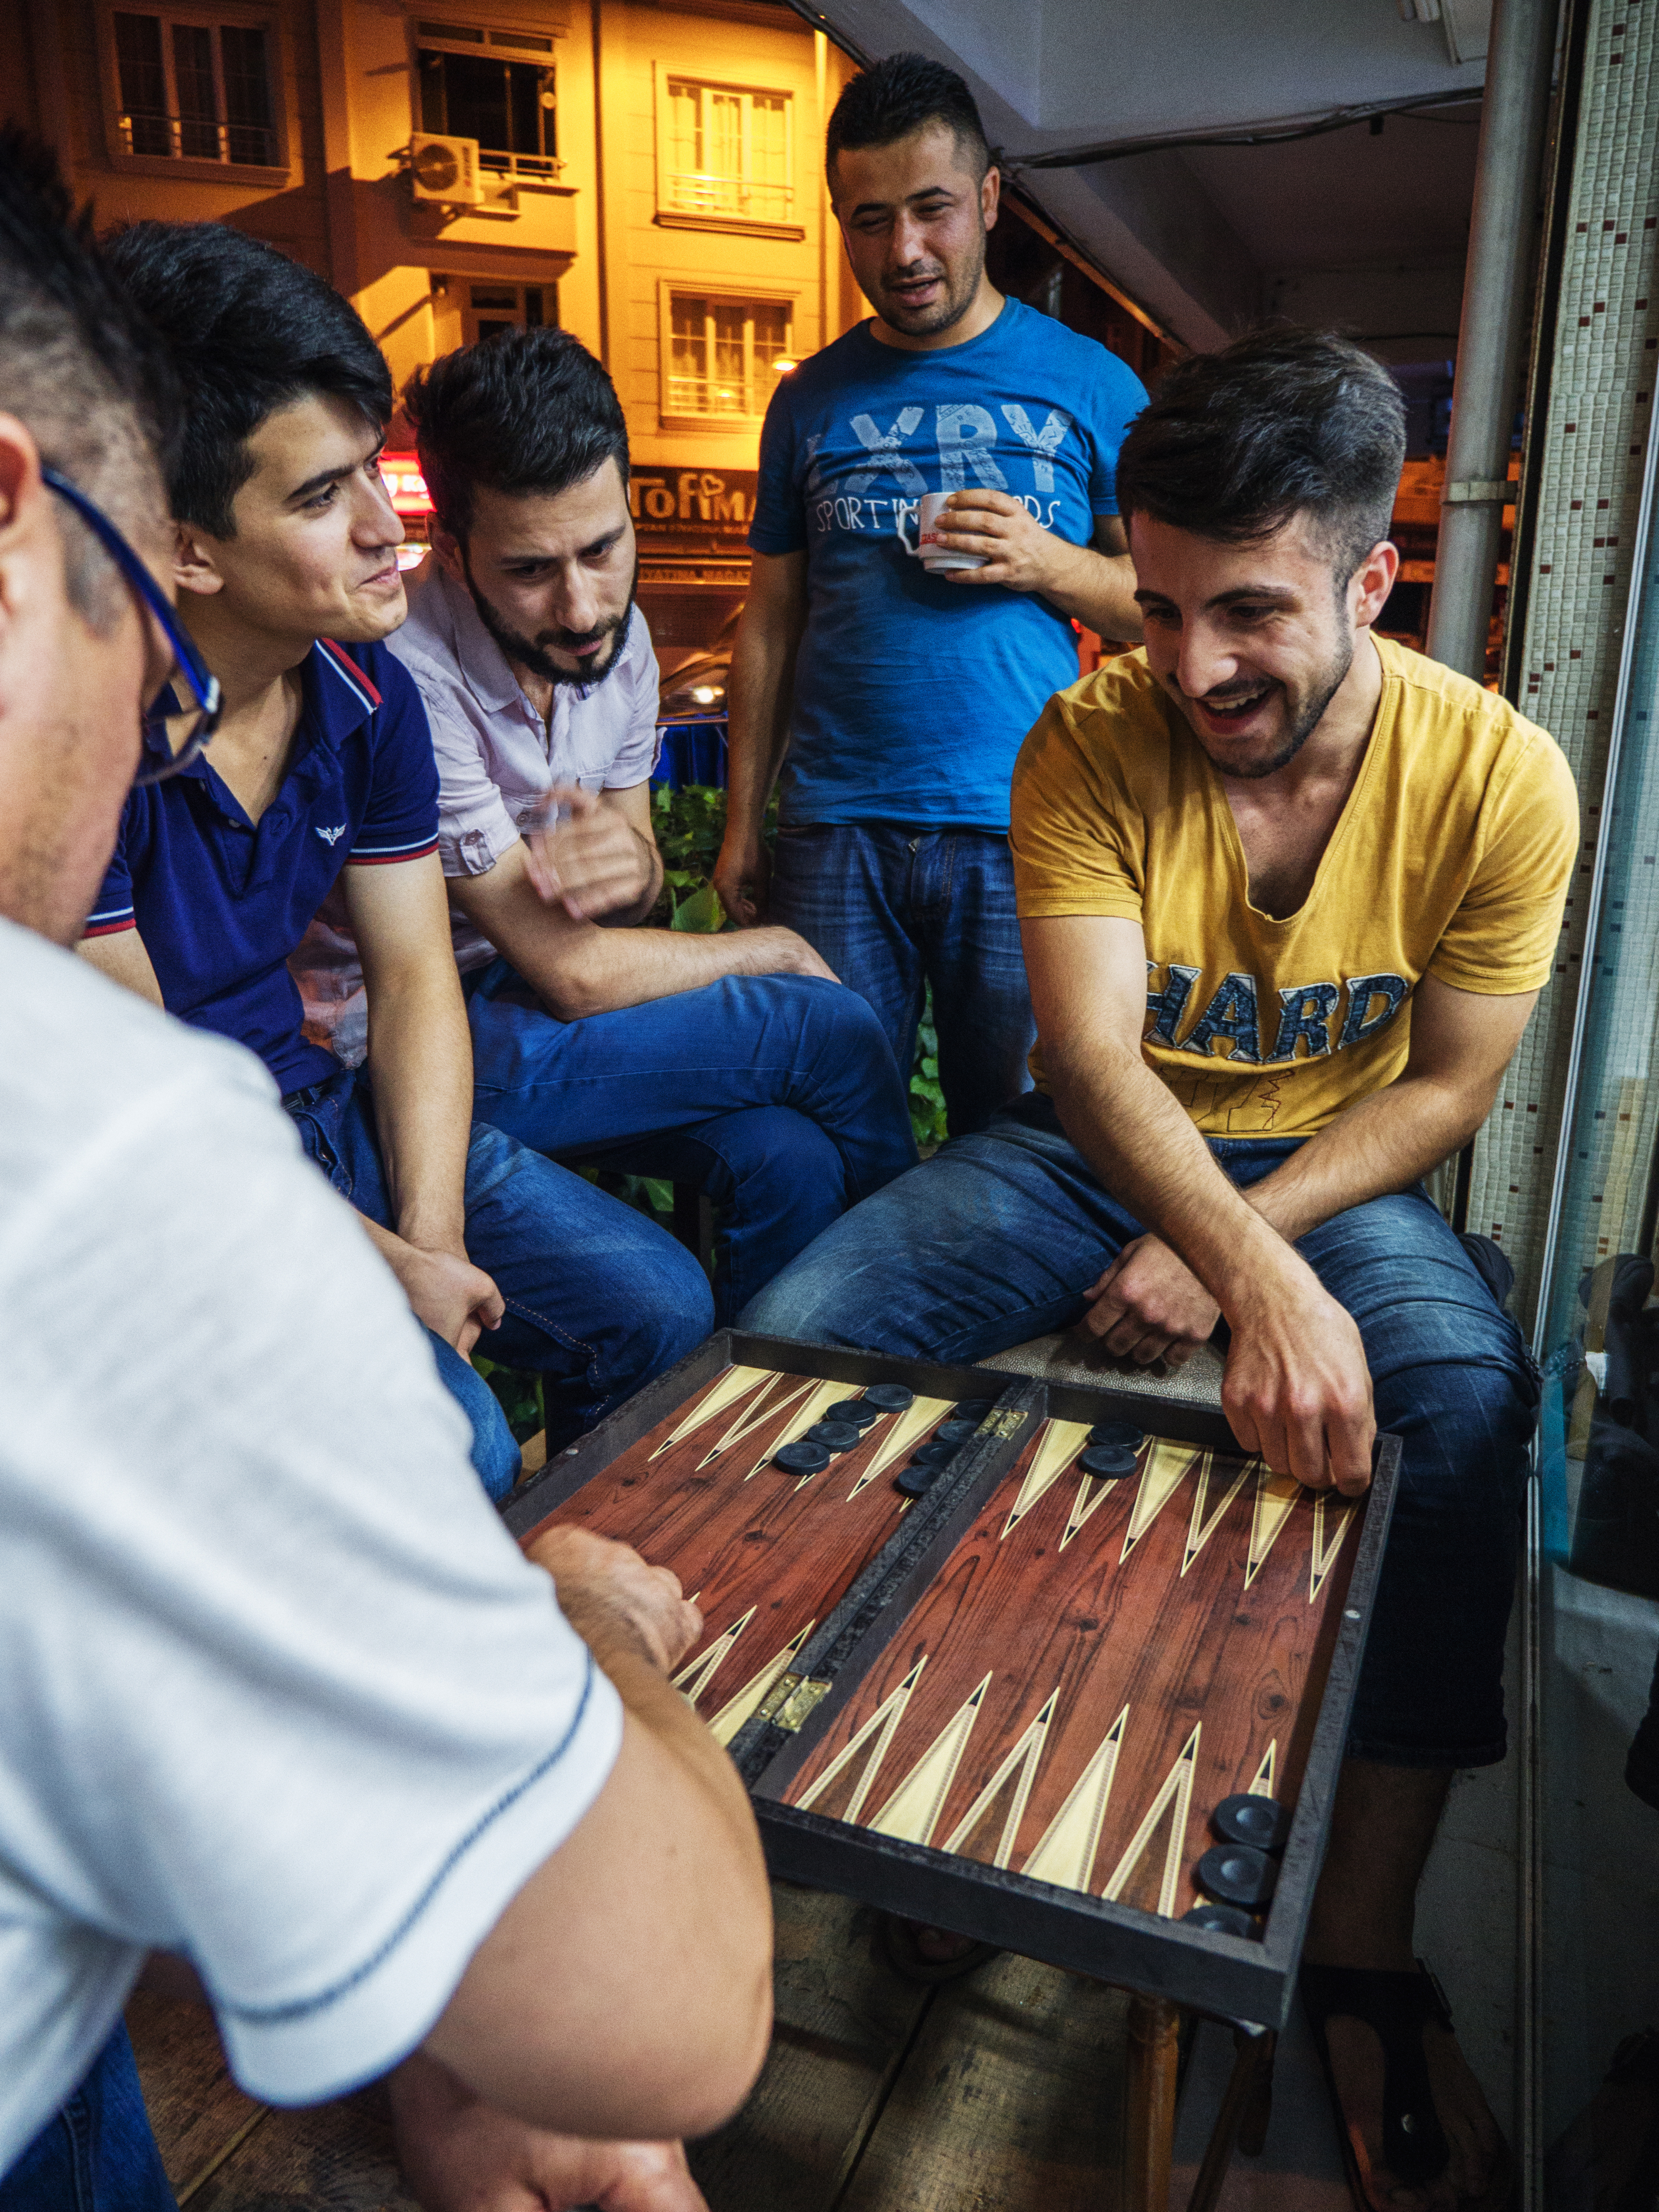 Mehmet plays backgammon at work